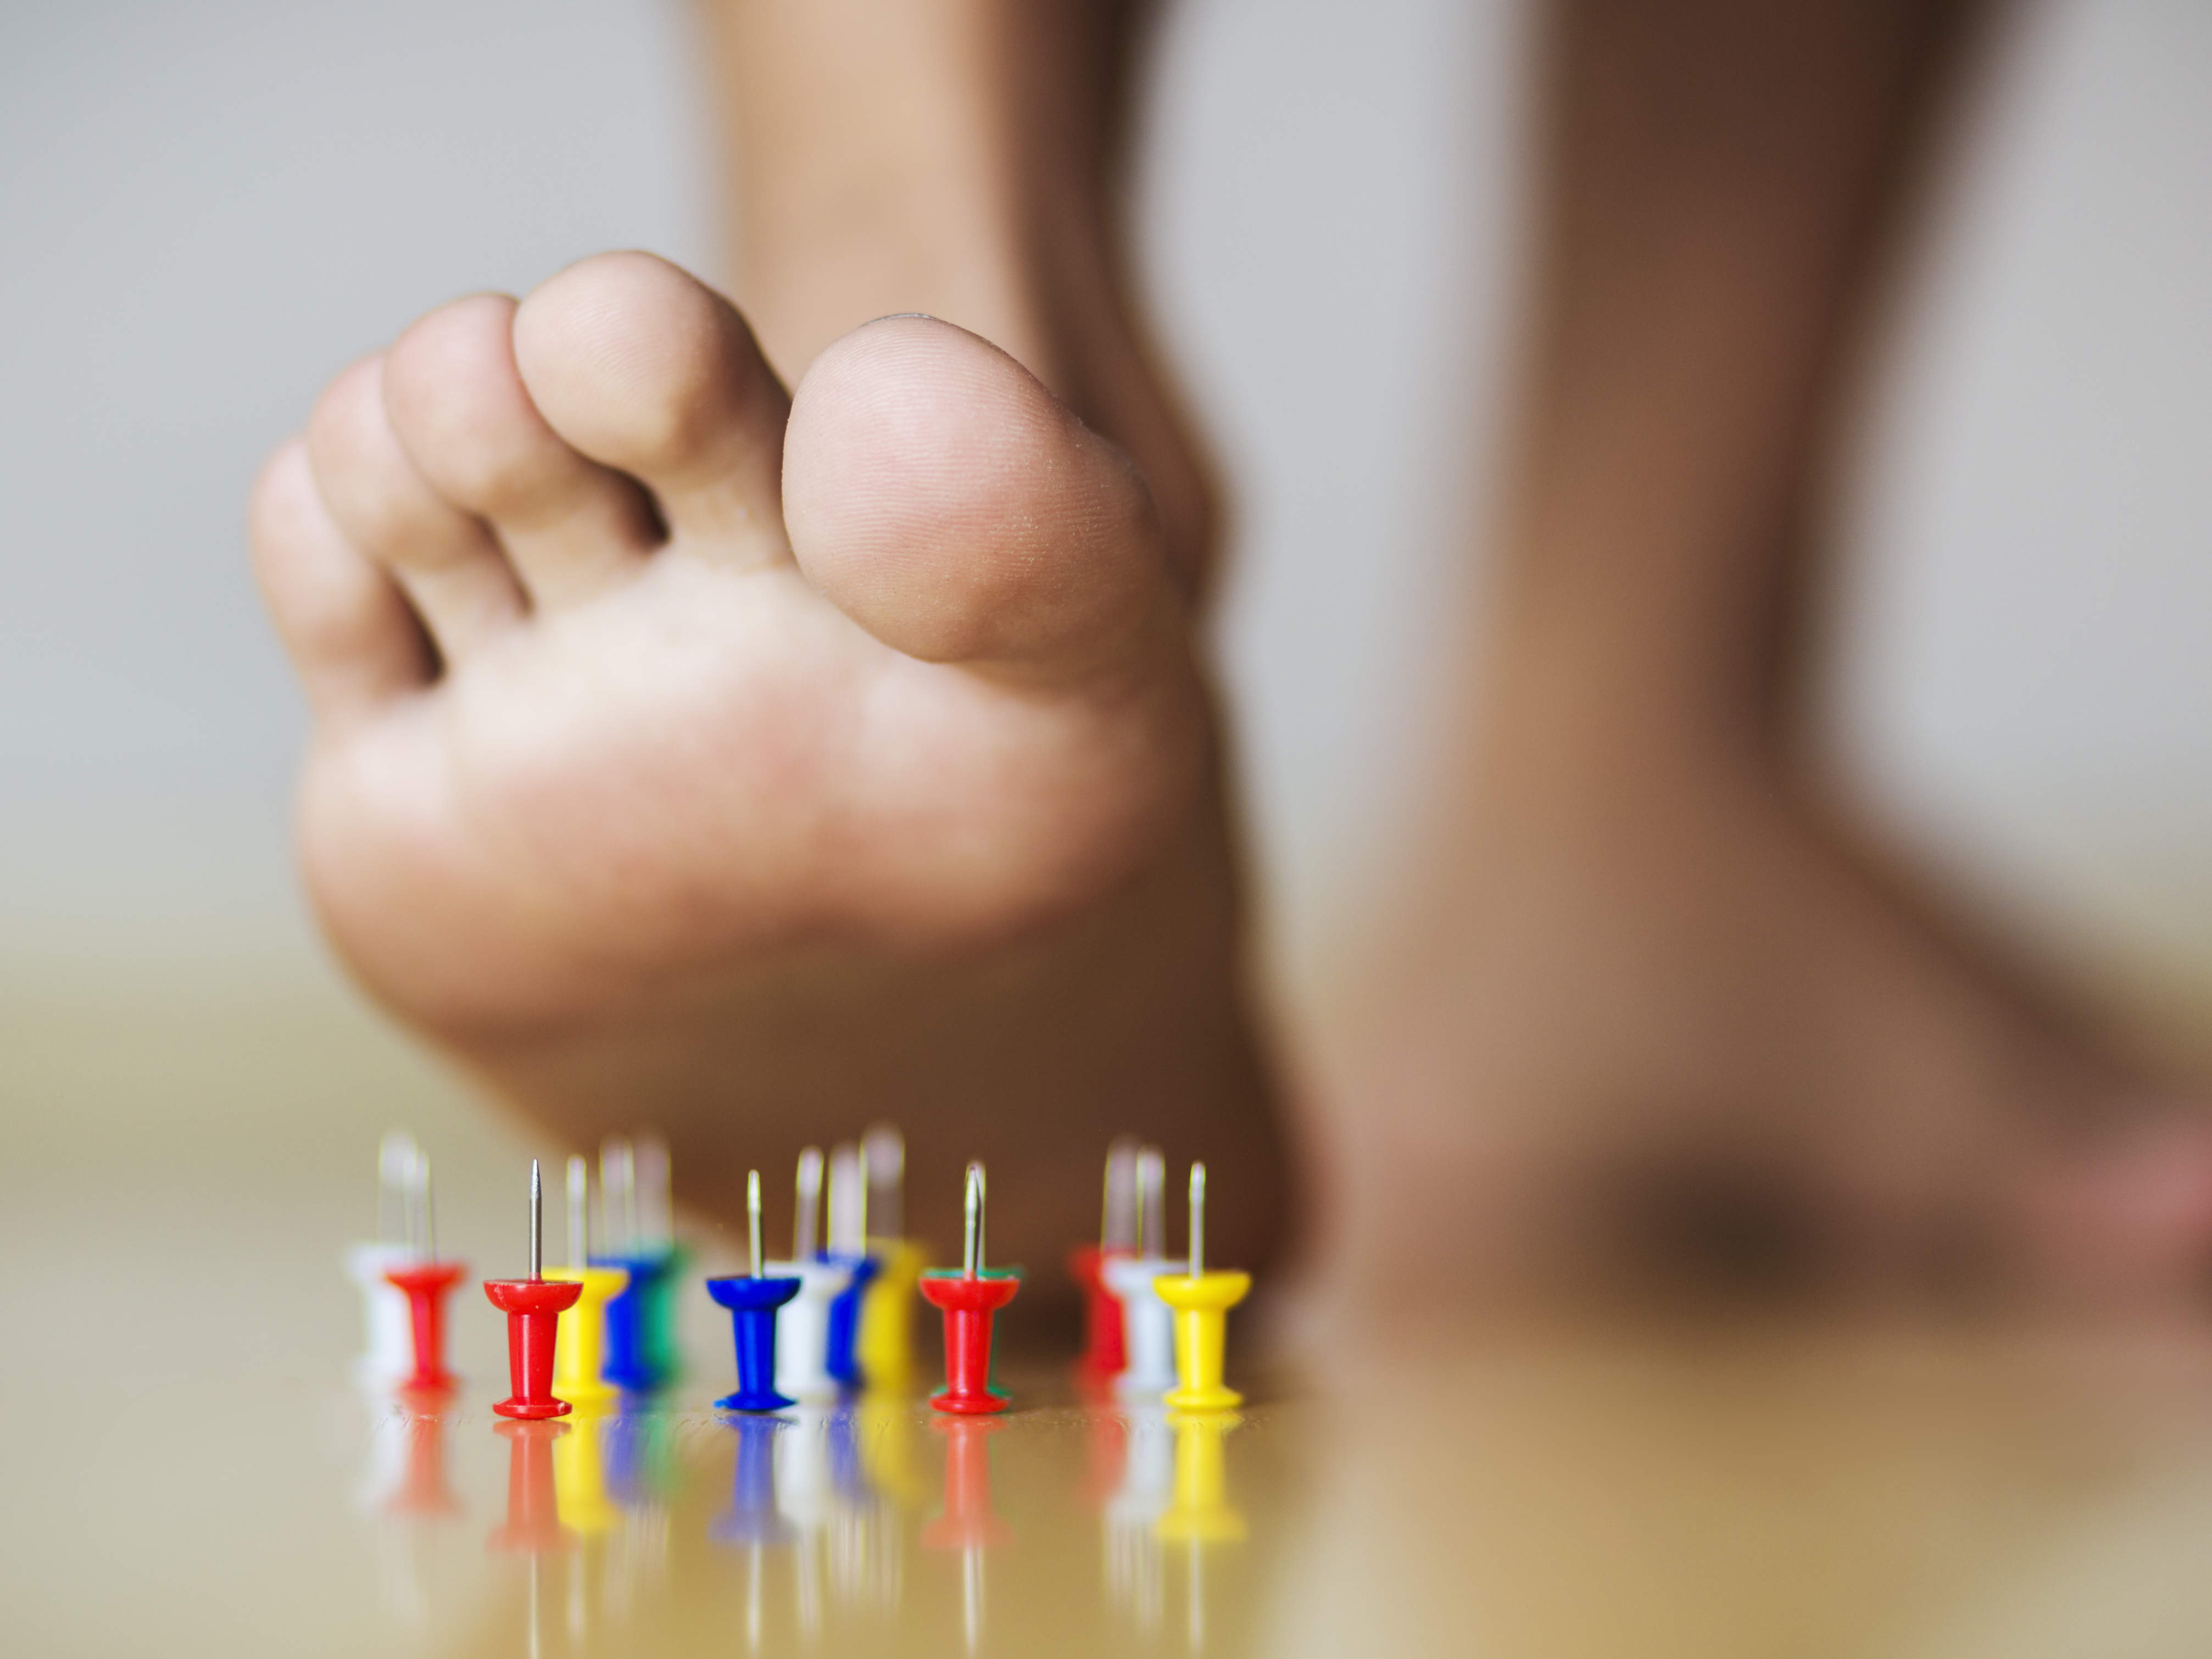 erase-your-pain-feature-pins